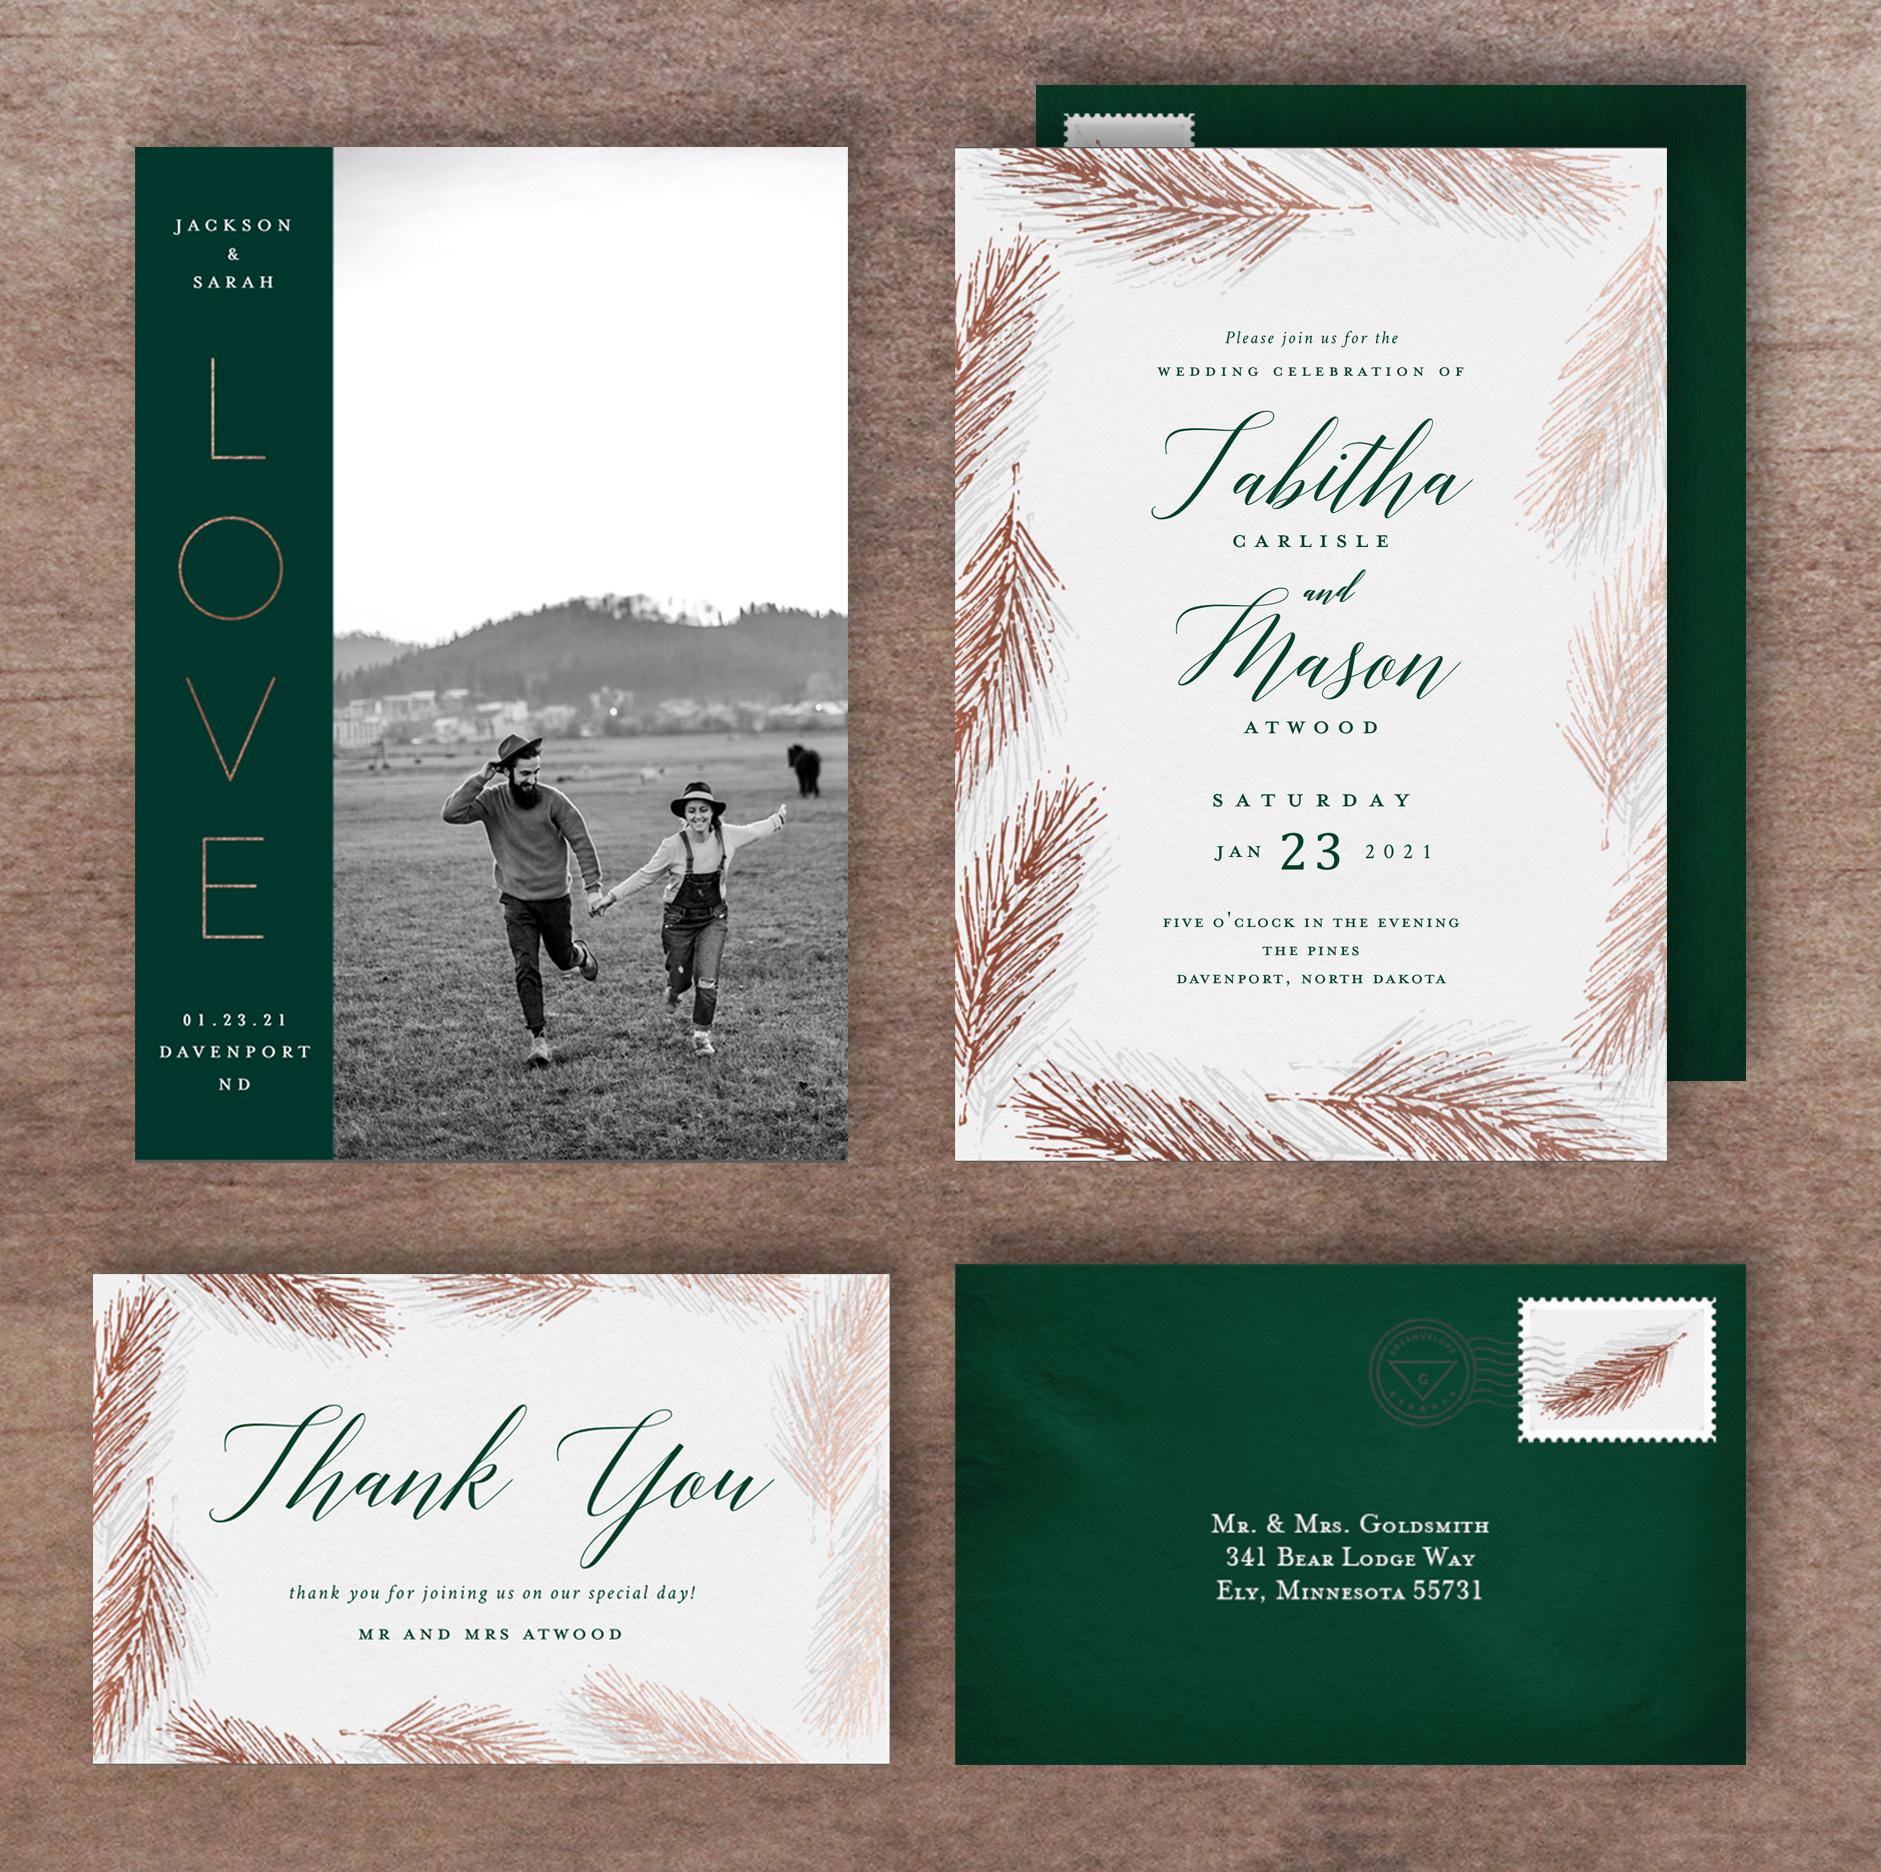 Digital Wedding Invitation Suite With Foil Pine Needles